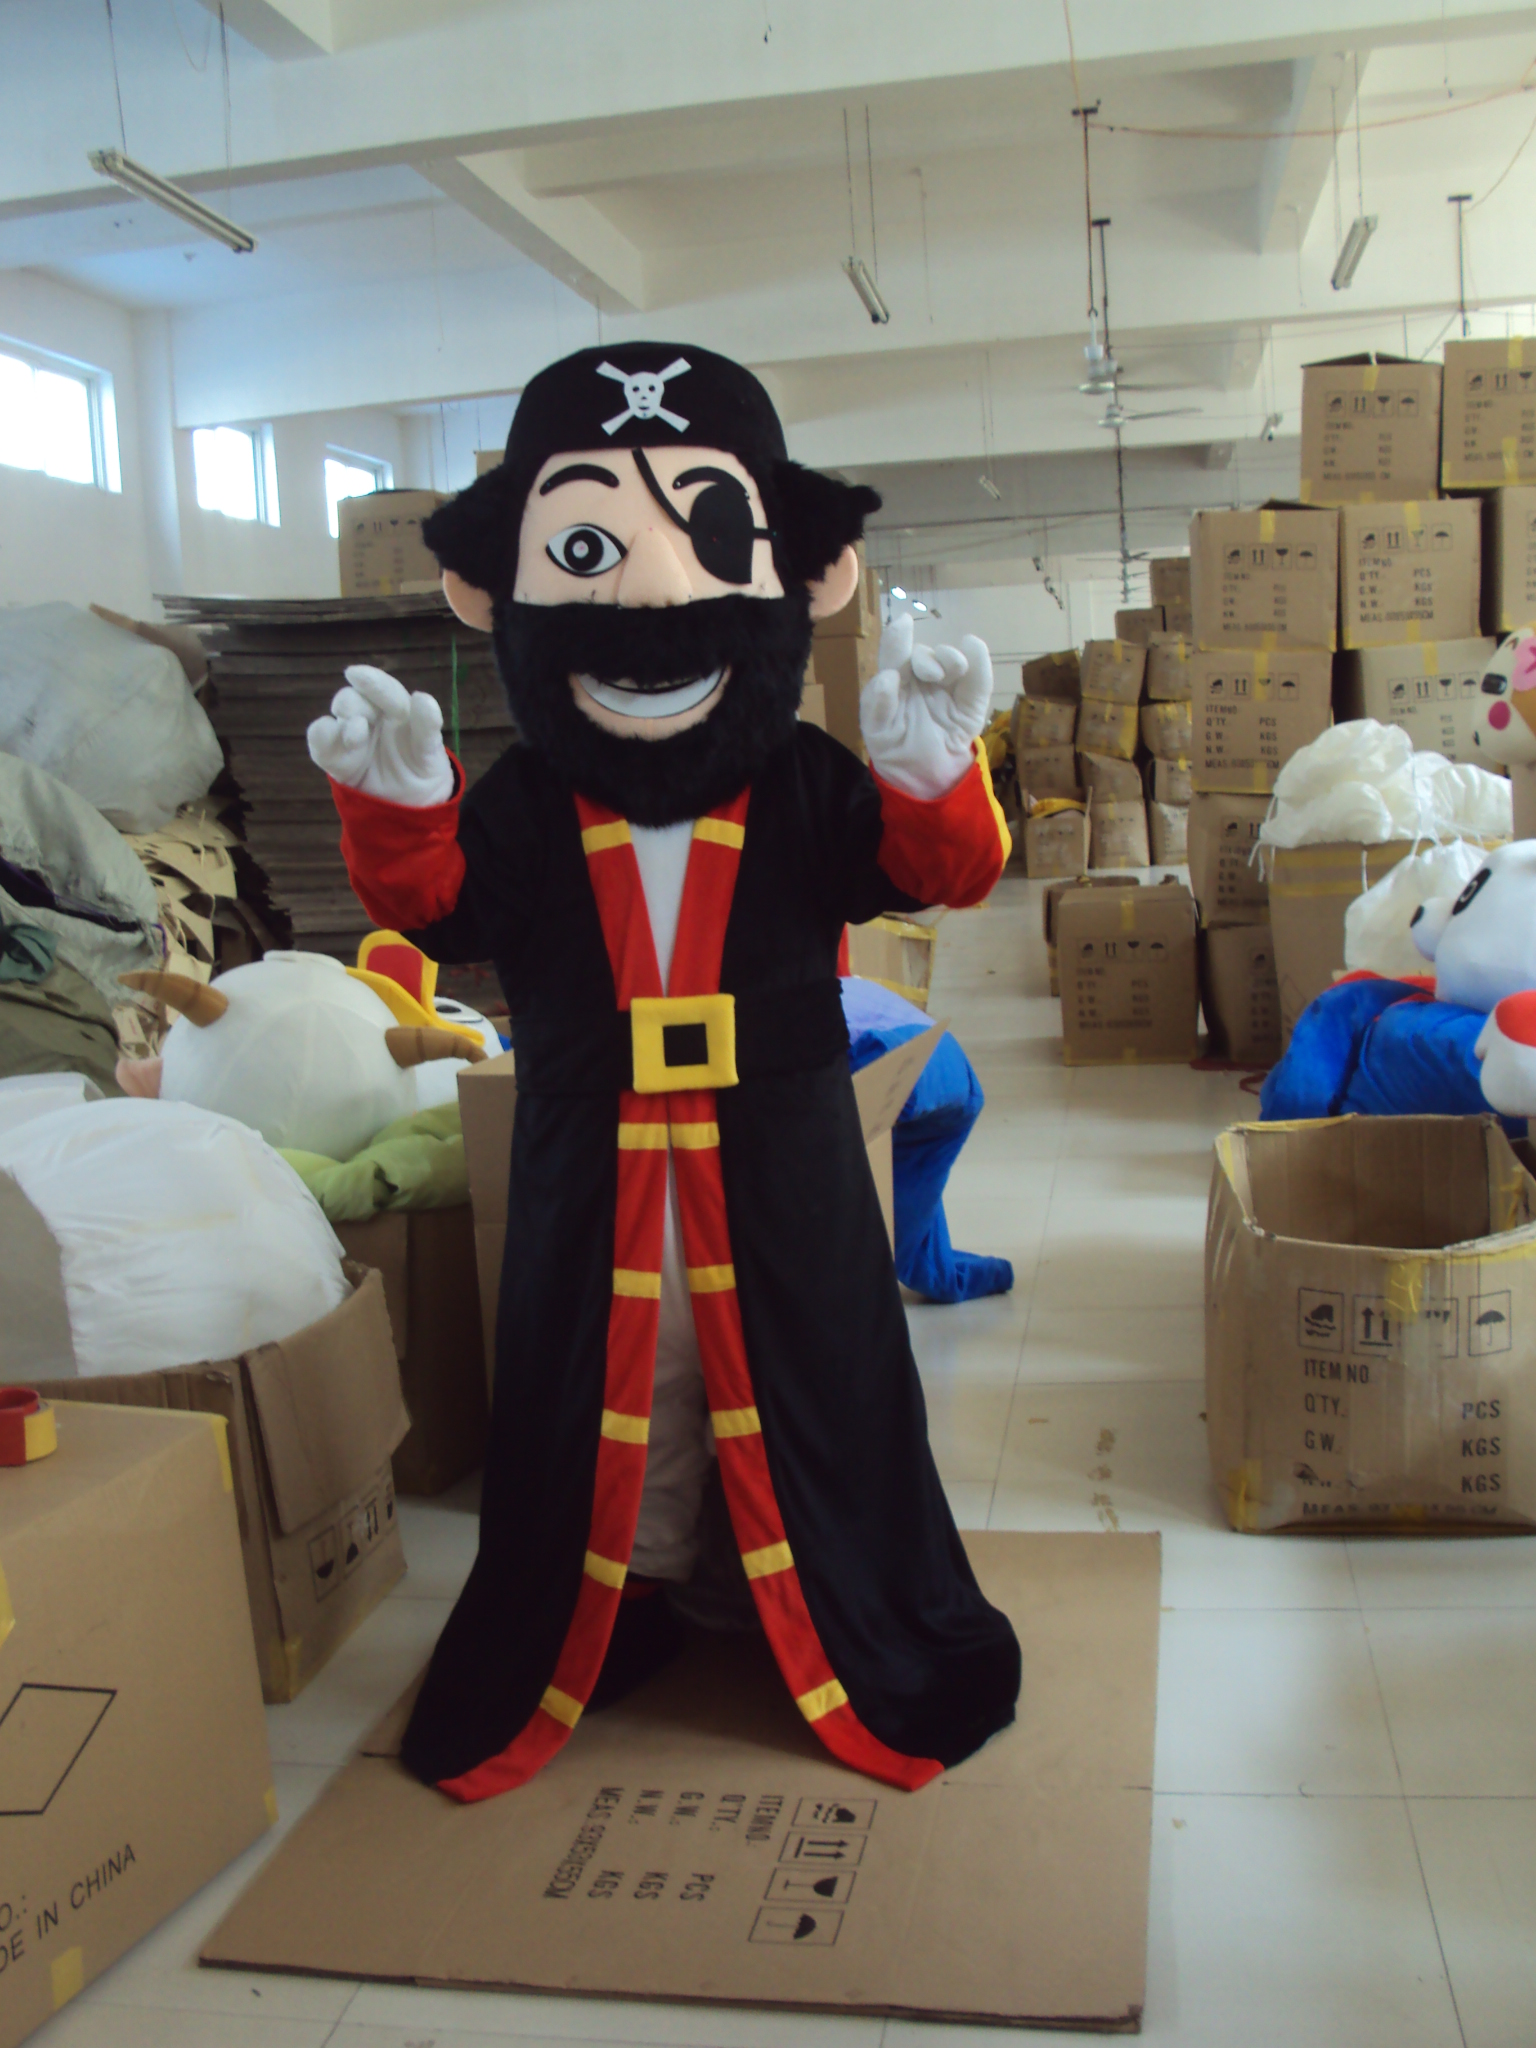 Pirate Captain mascot costume hot sale Halloween cartoon character fancy dress carnival costume Cosplay Outfits Adult Size